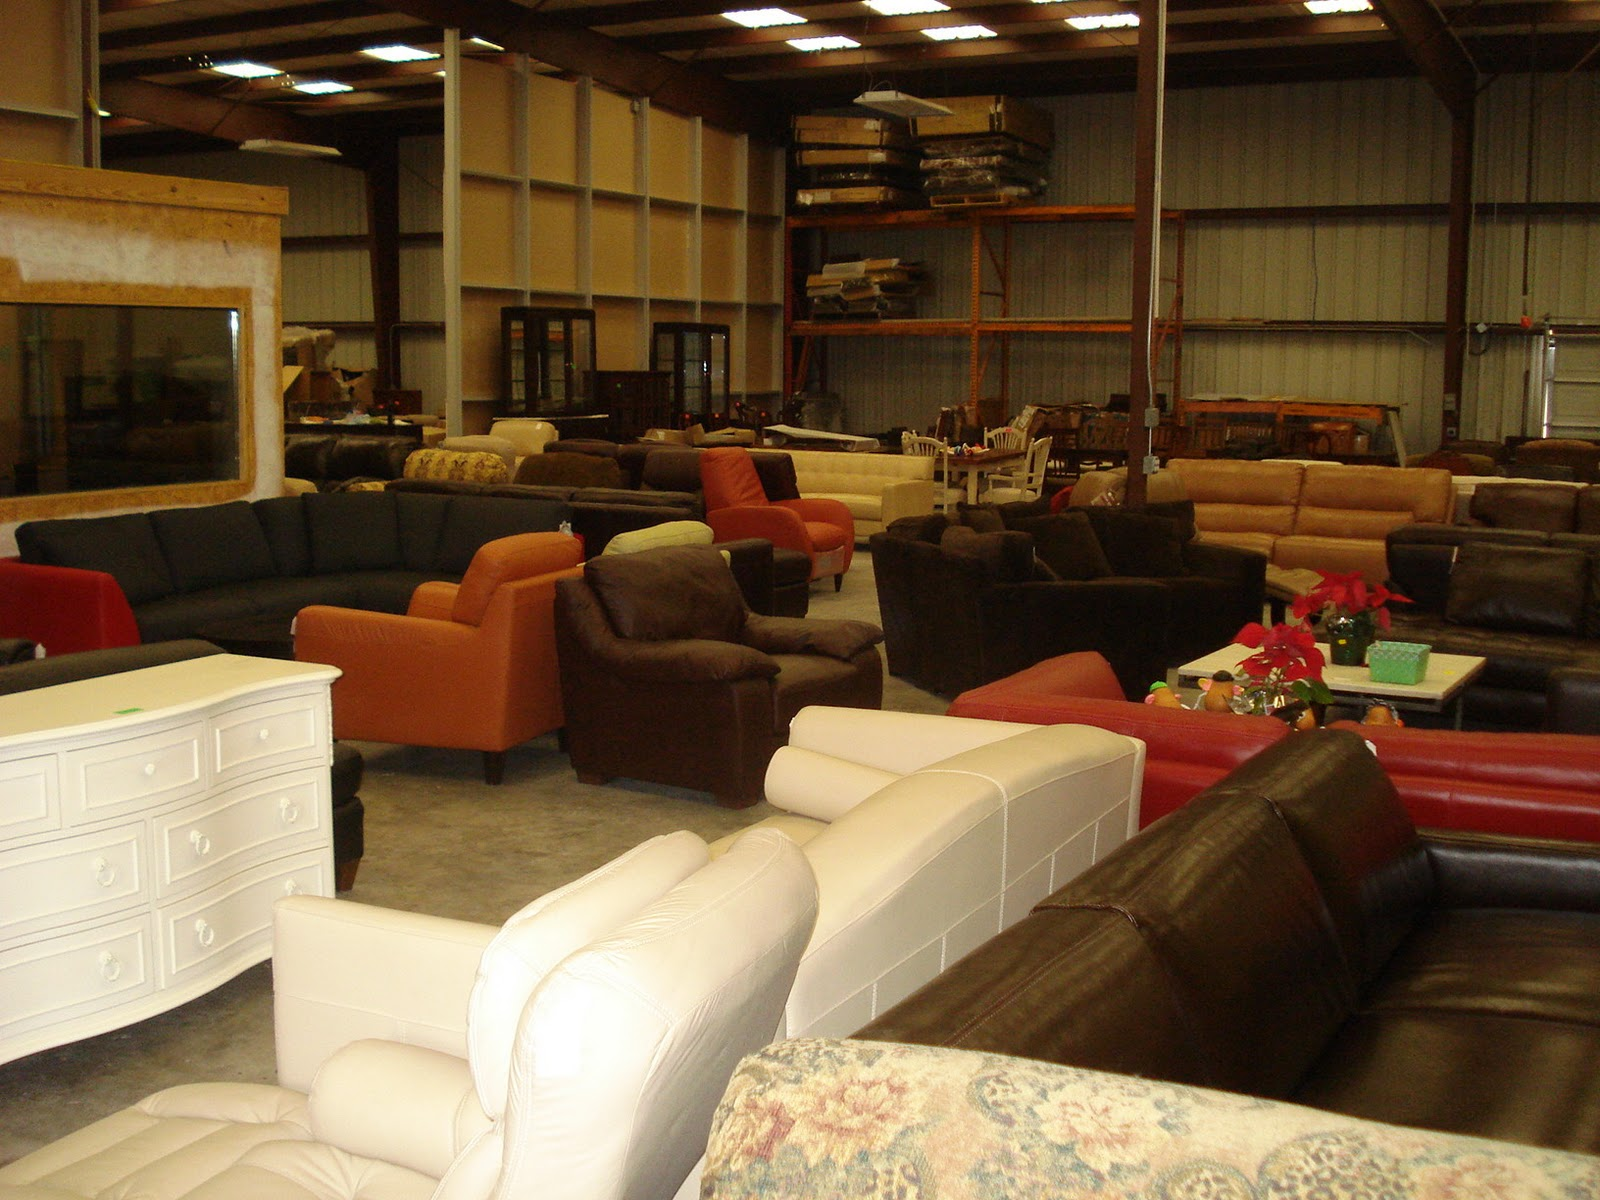 Furniture Stores Austin Tx Austin 39 S Couch Potatoes Italian Leather Lines 50 Of Retail Don